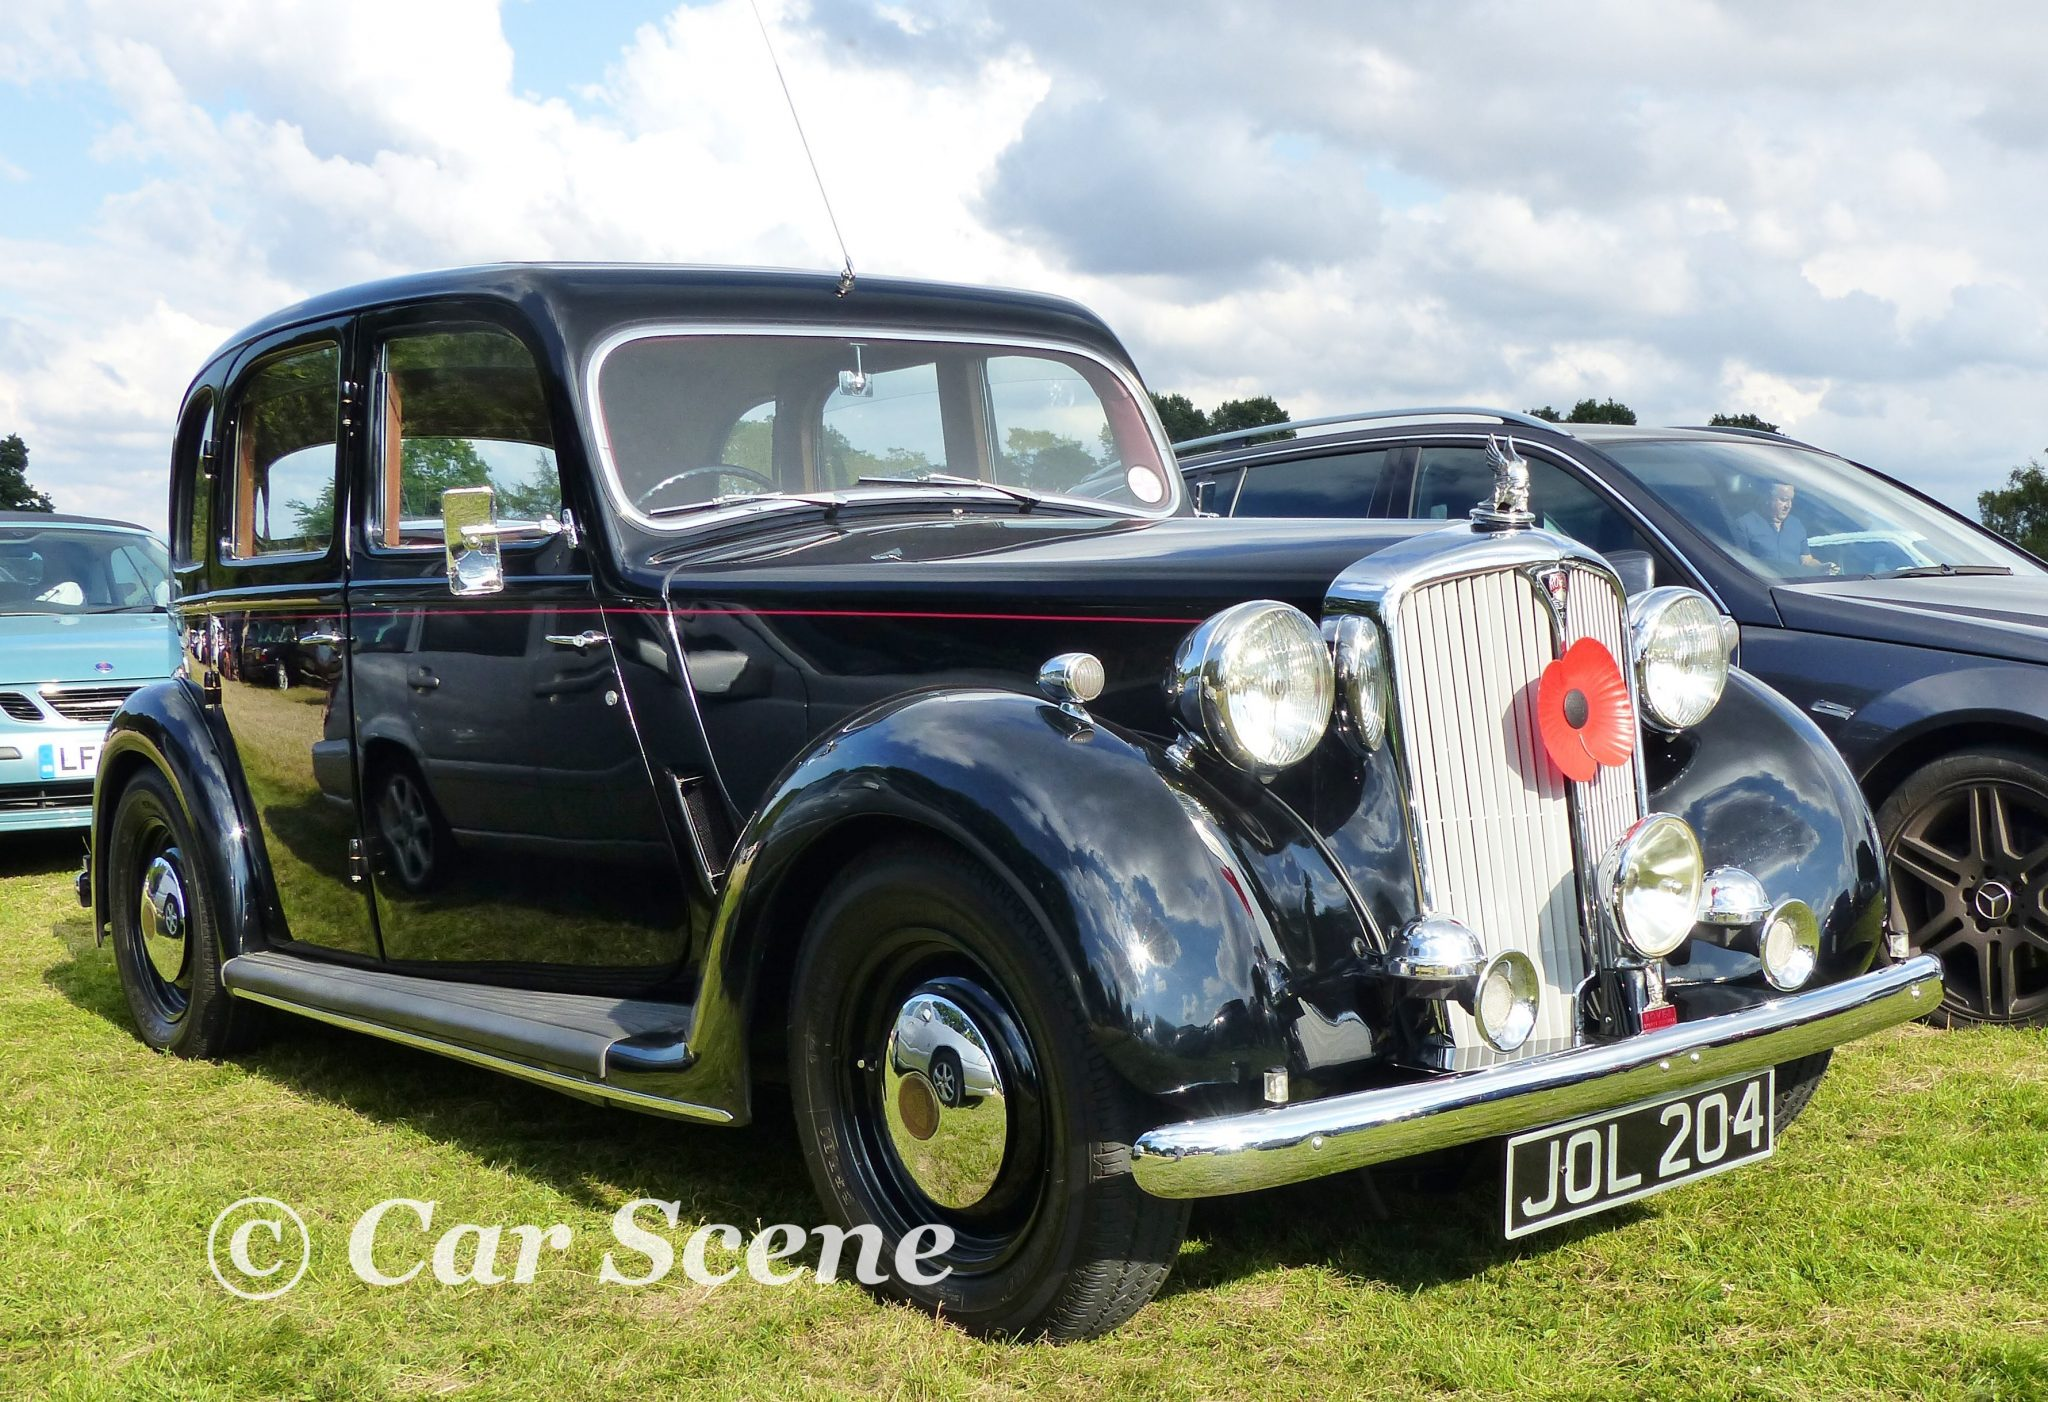 1949 Rover 75 (P3) front three quarters view